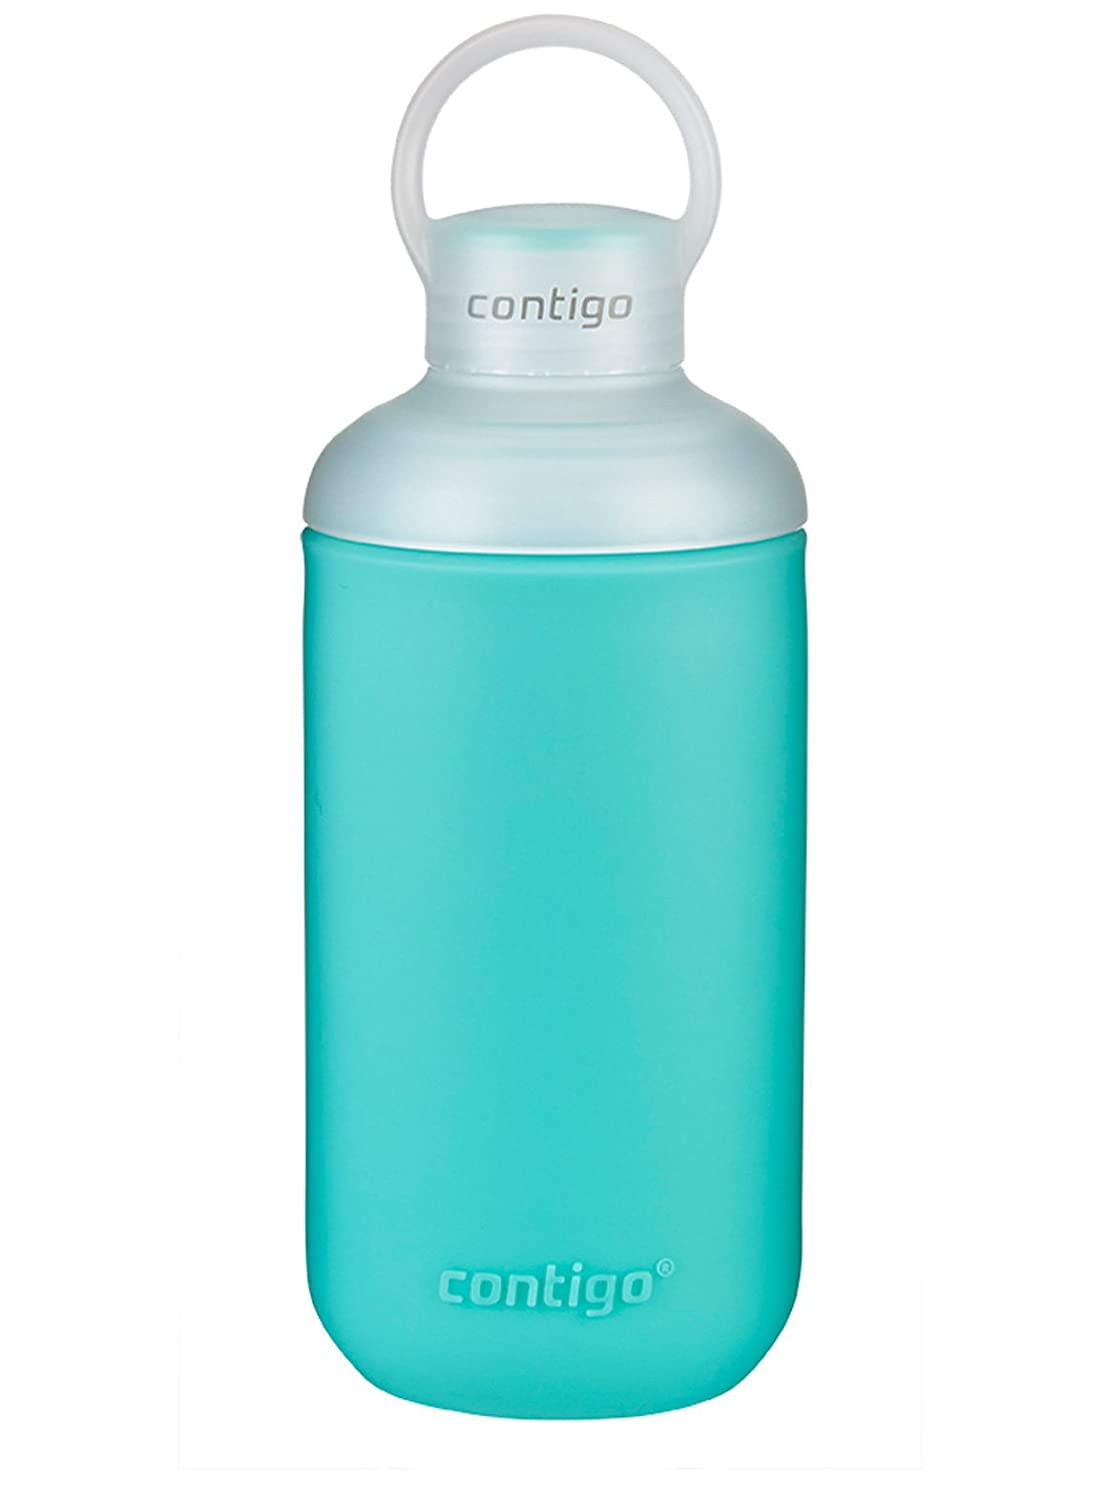 Contigo Tranquil Water Bottle, 20oz, Greyed Jade by Contigo